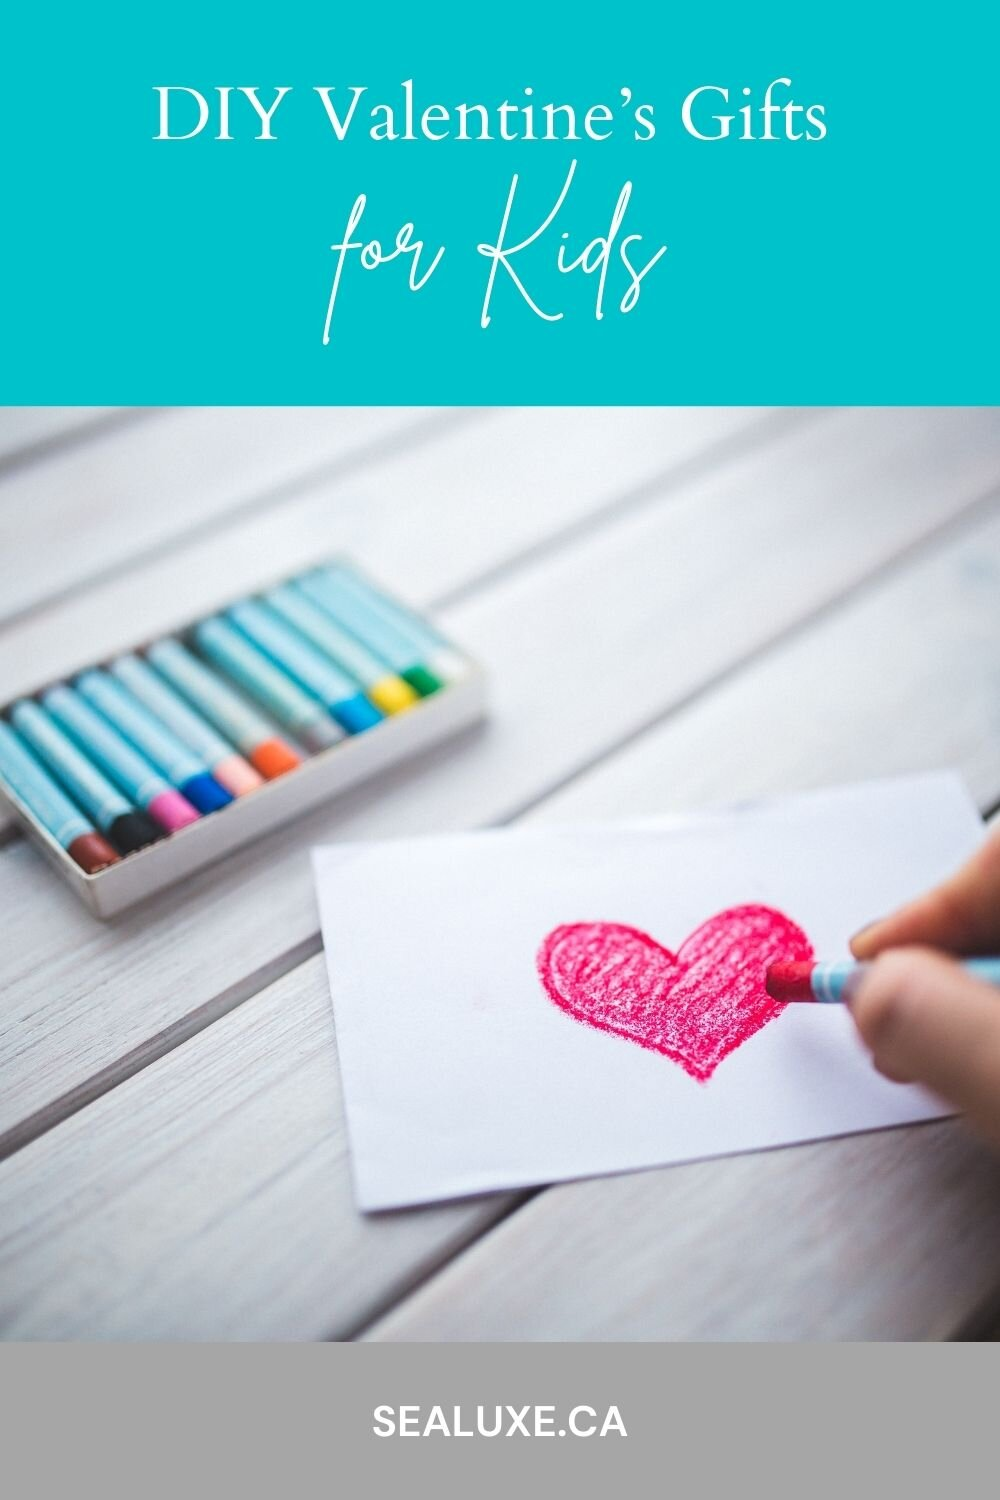 diy-valentines-gifts-for-kids.jpg